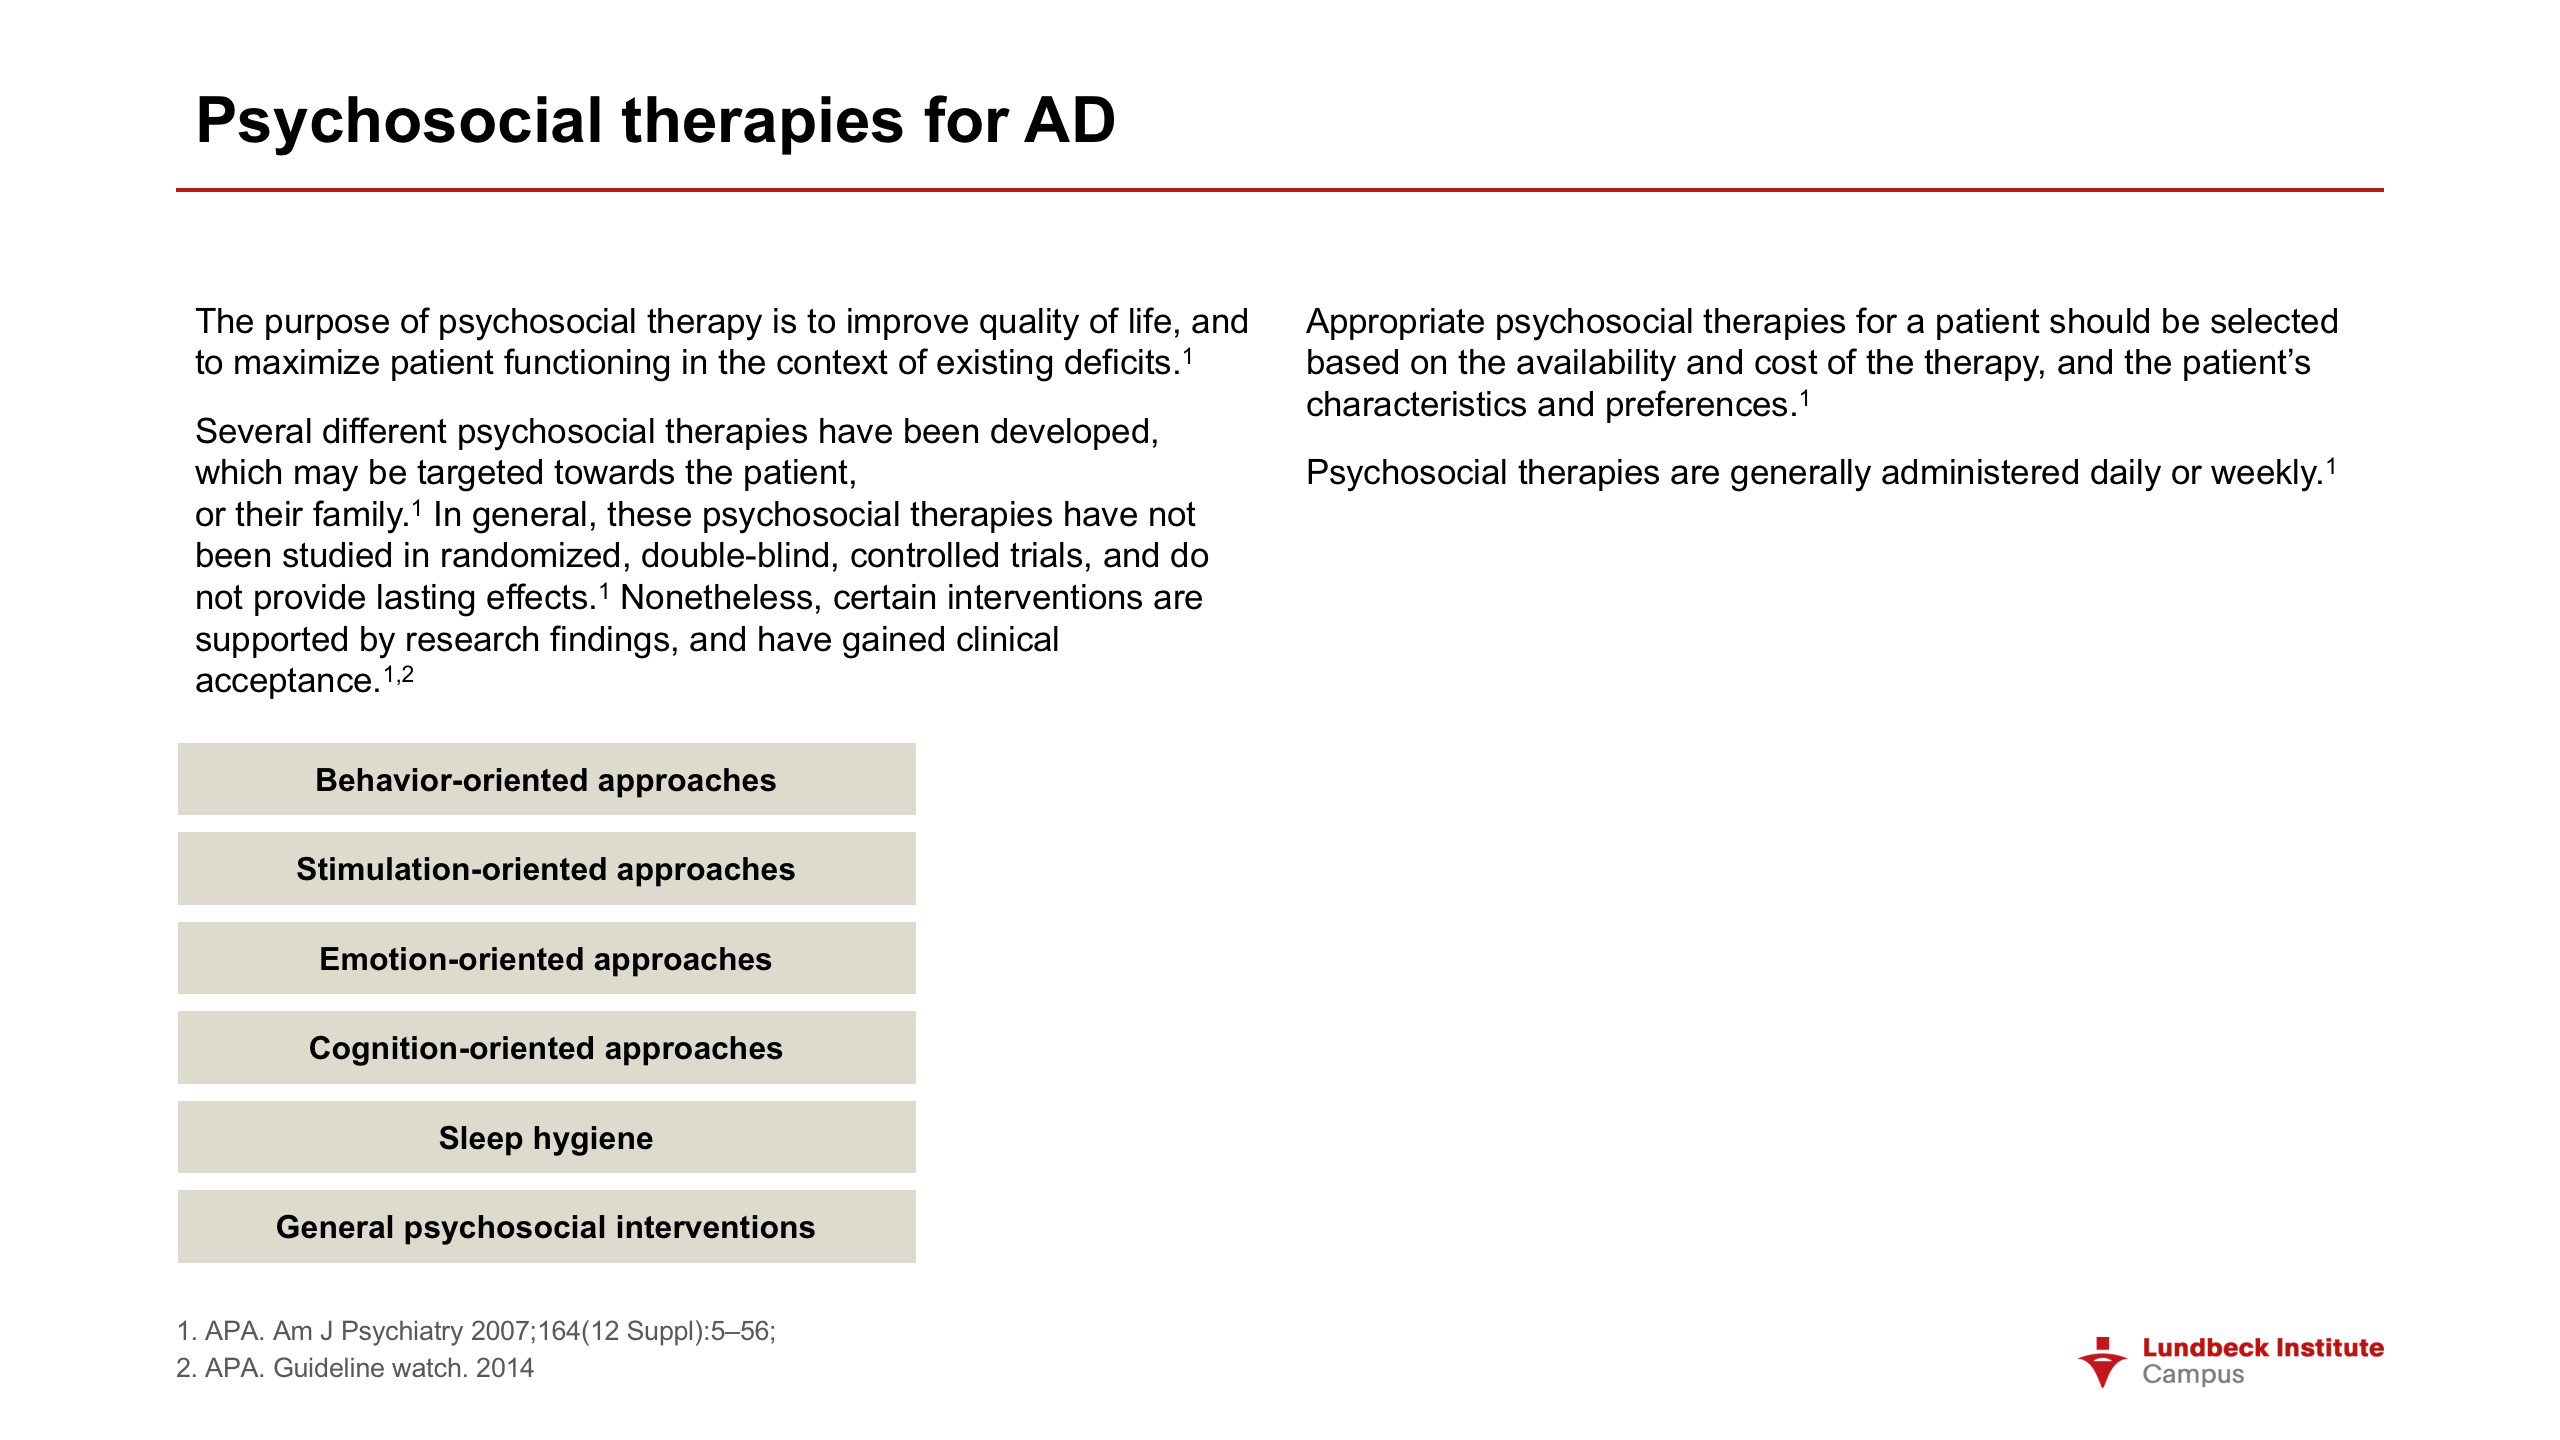 Psychosocial therapies for AD